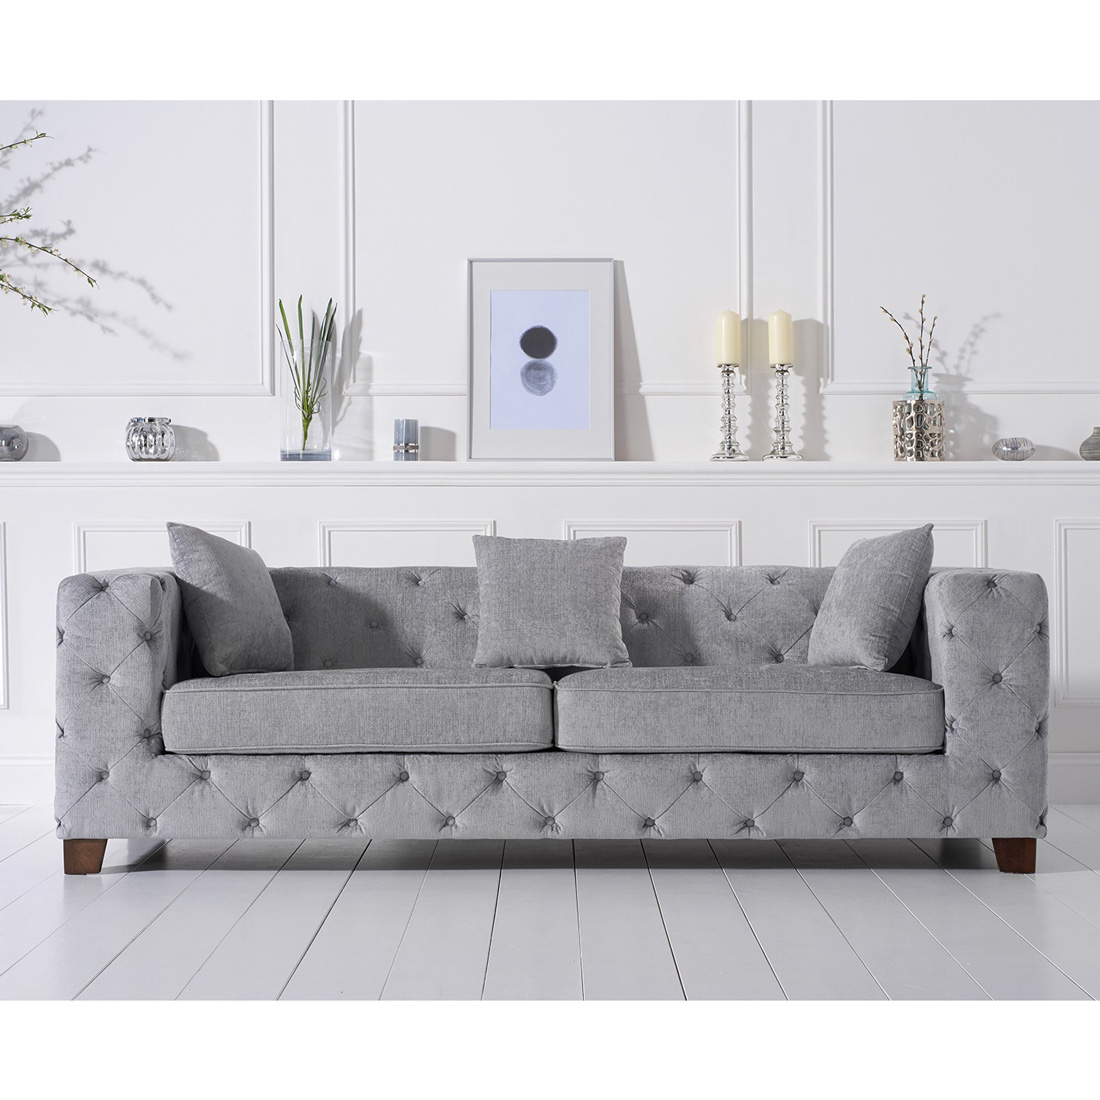 fordham chesterfield grey plush three seater sofa fads. Black Bedroom Furniture Sets. Home Design Ideas